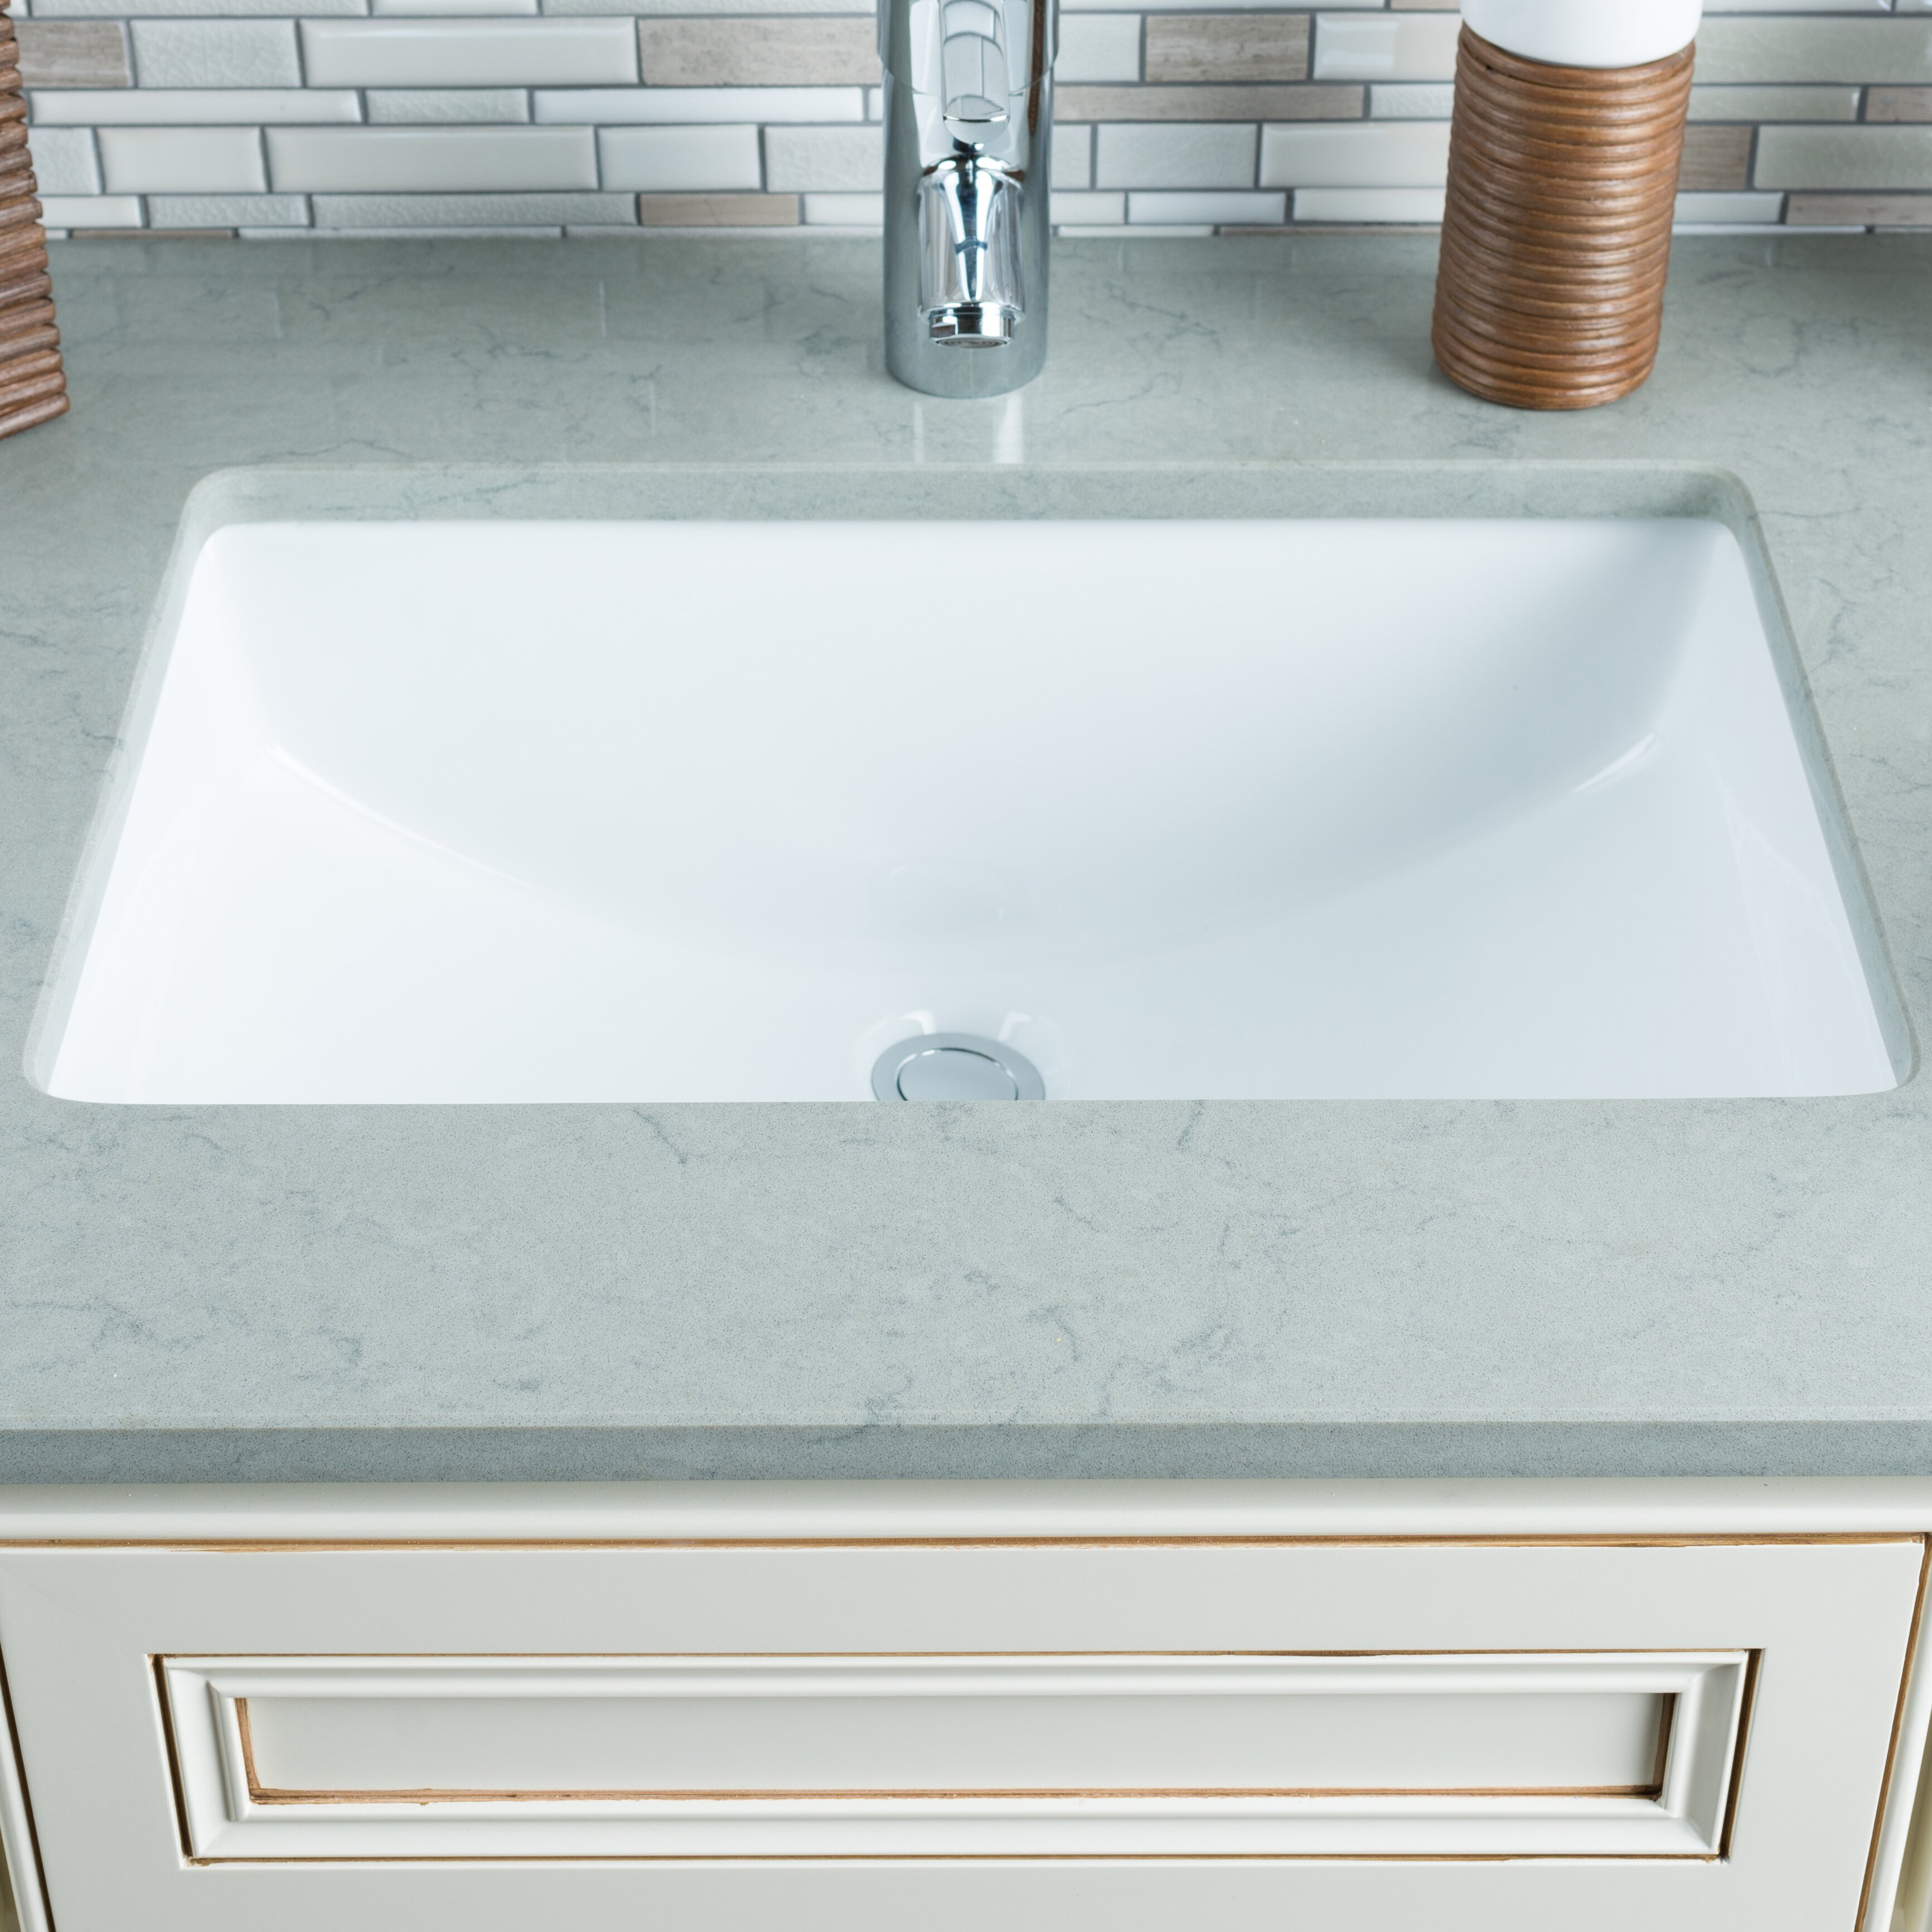 Hahn Ceramic Bowl Rectangular Undermount Bathroom Sink